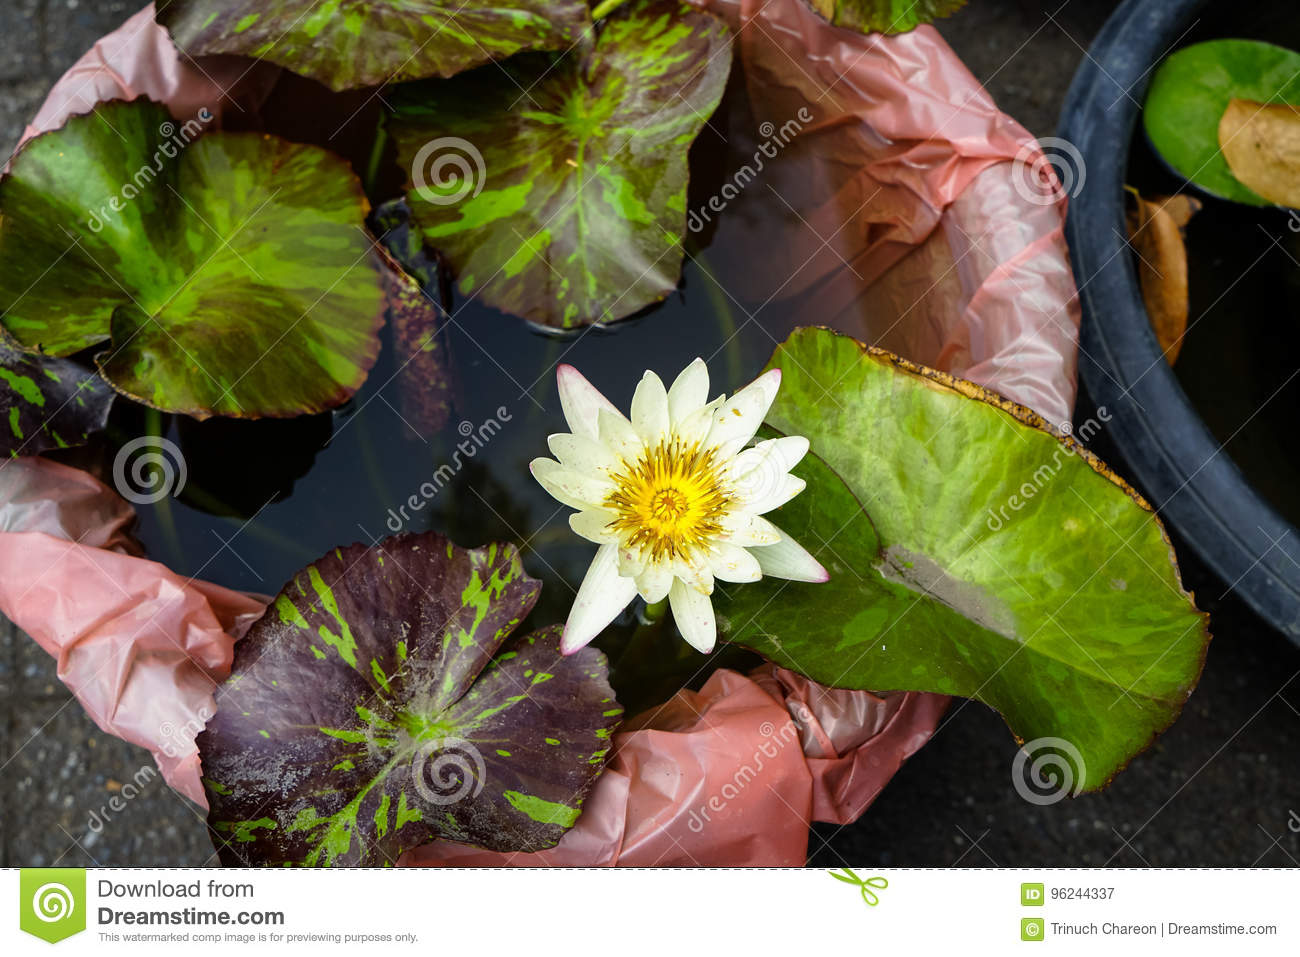 Beautiful White Color Water Lilies Or Nymphaea Blooming Among Leaves